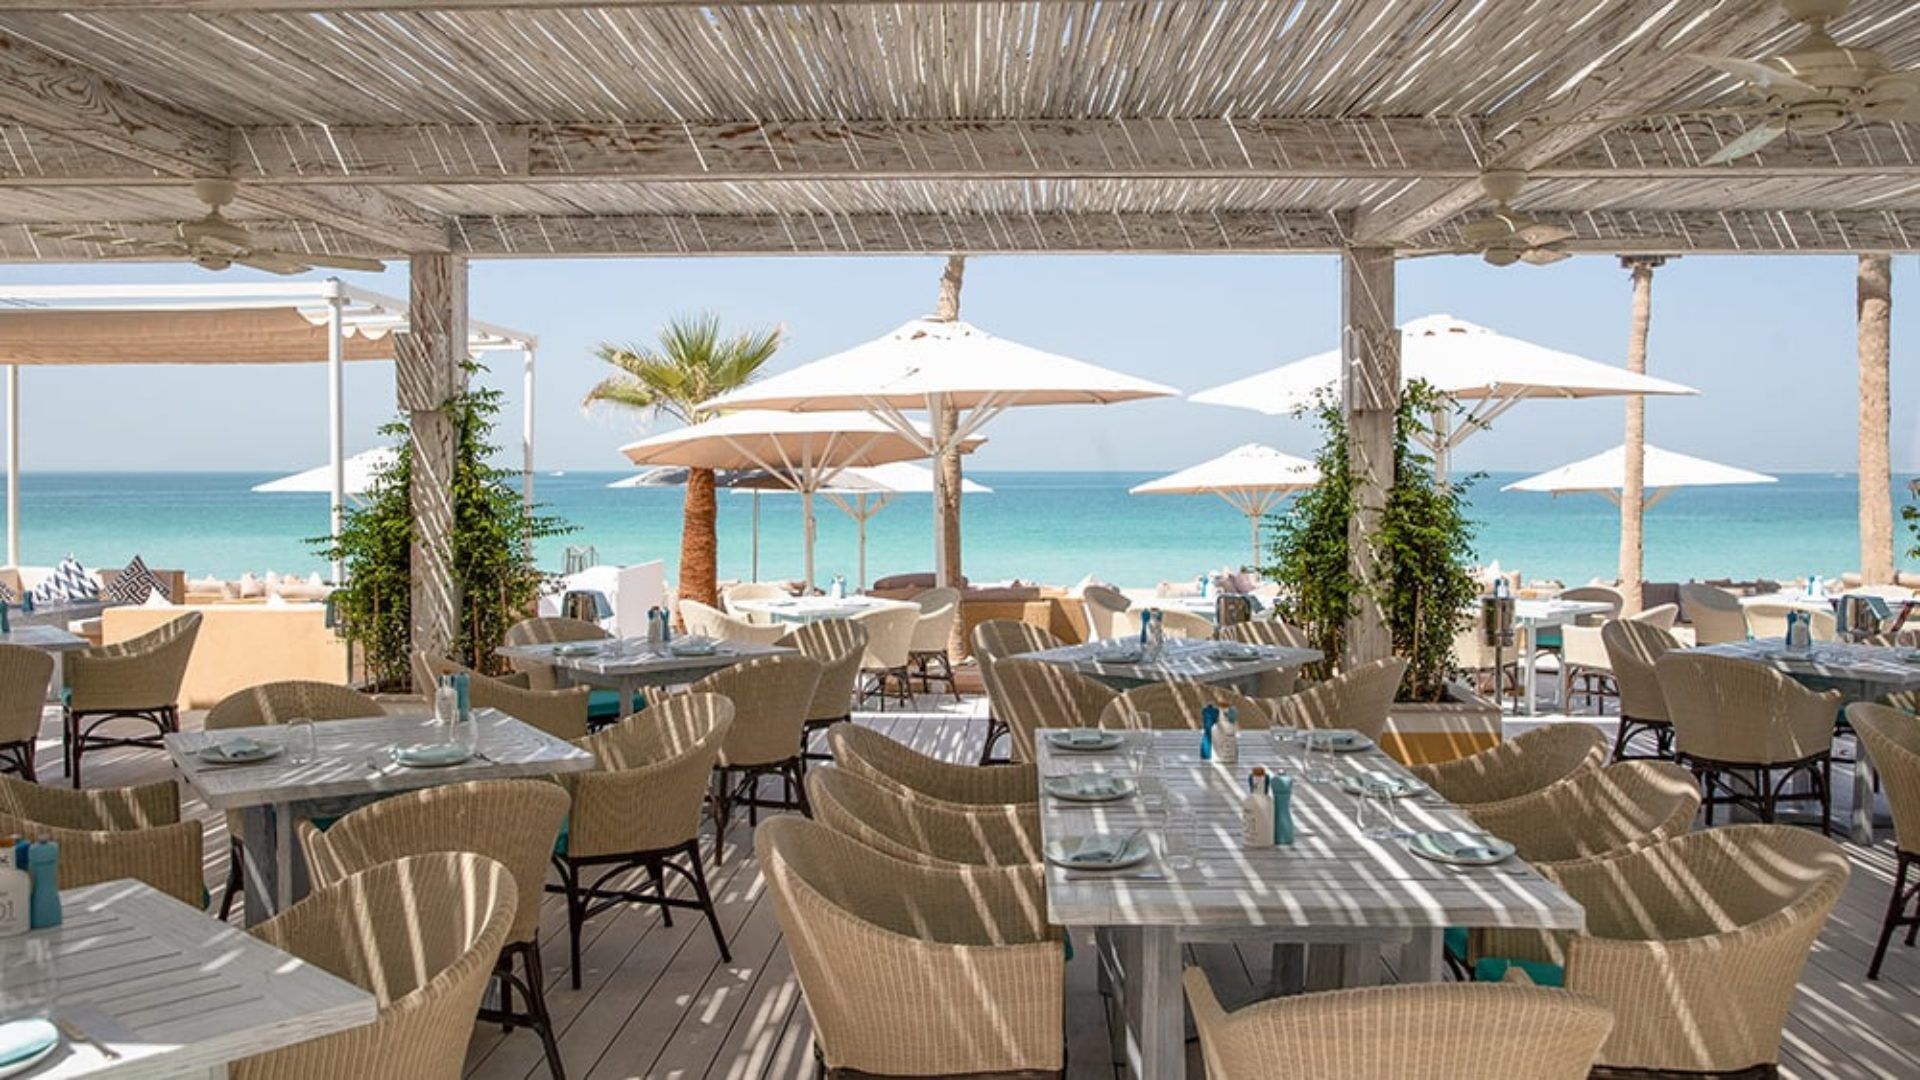 Outdoor terrace dining with beach views at Jumeirah Dar Al Masyaf